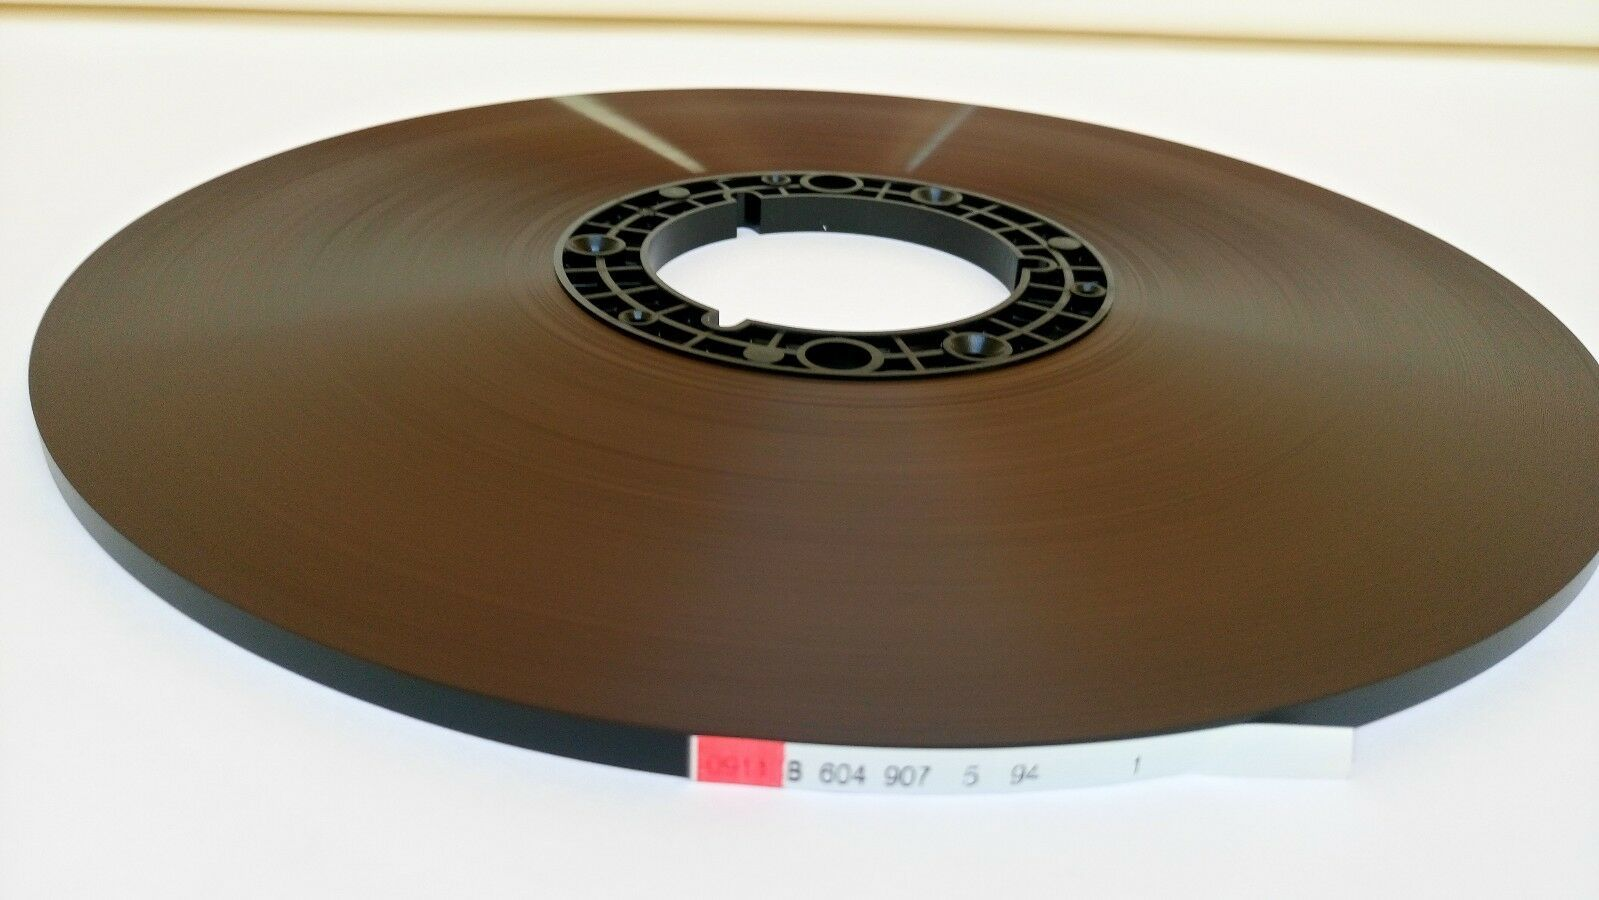 "RTM SM911 BASF Reel Master Tape, BIG PANCAKE 1/4"" 3608ft 1100m Authorised Dealer"